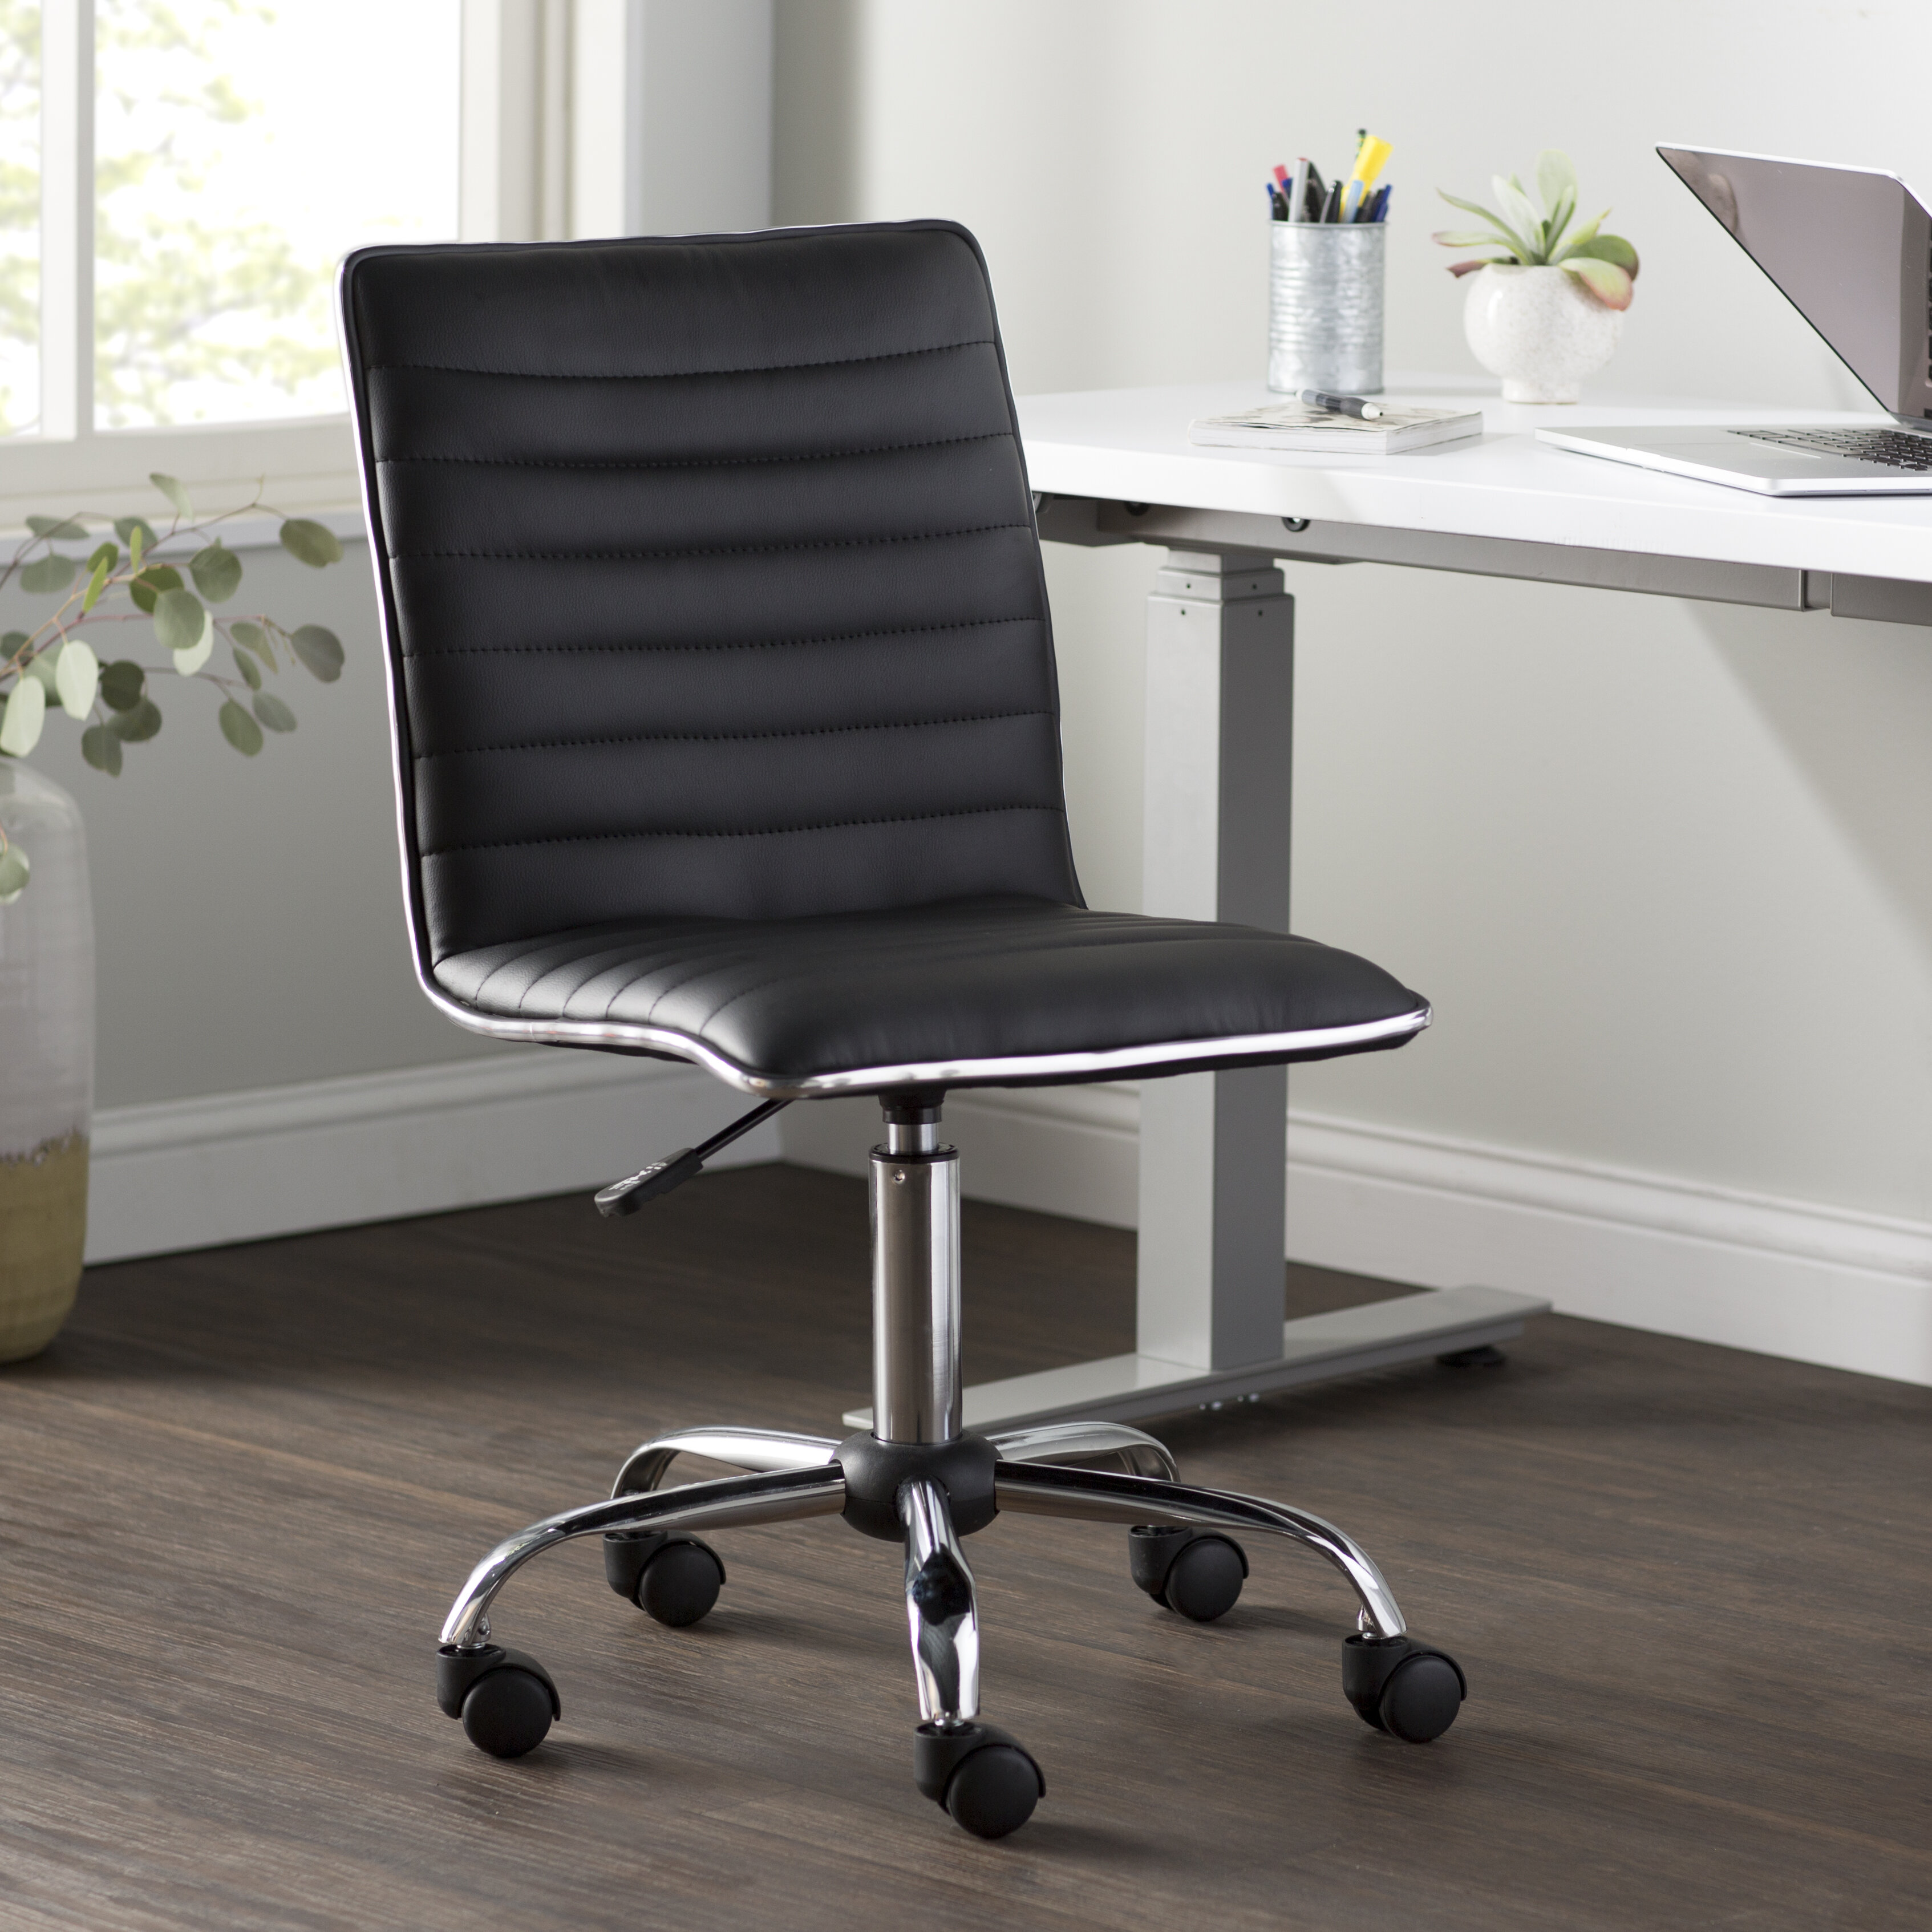 Delicieux Wayfair Basics™ Wayfair Basics Adjustable Mid Back Desk Chair U0026 Reviews |  Wayfair